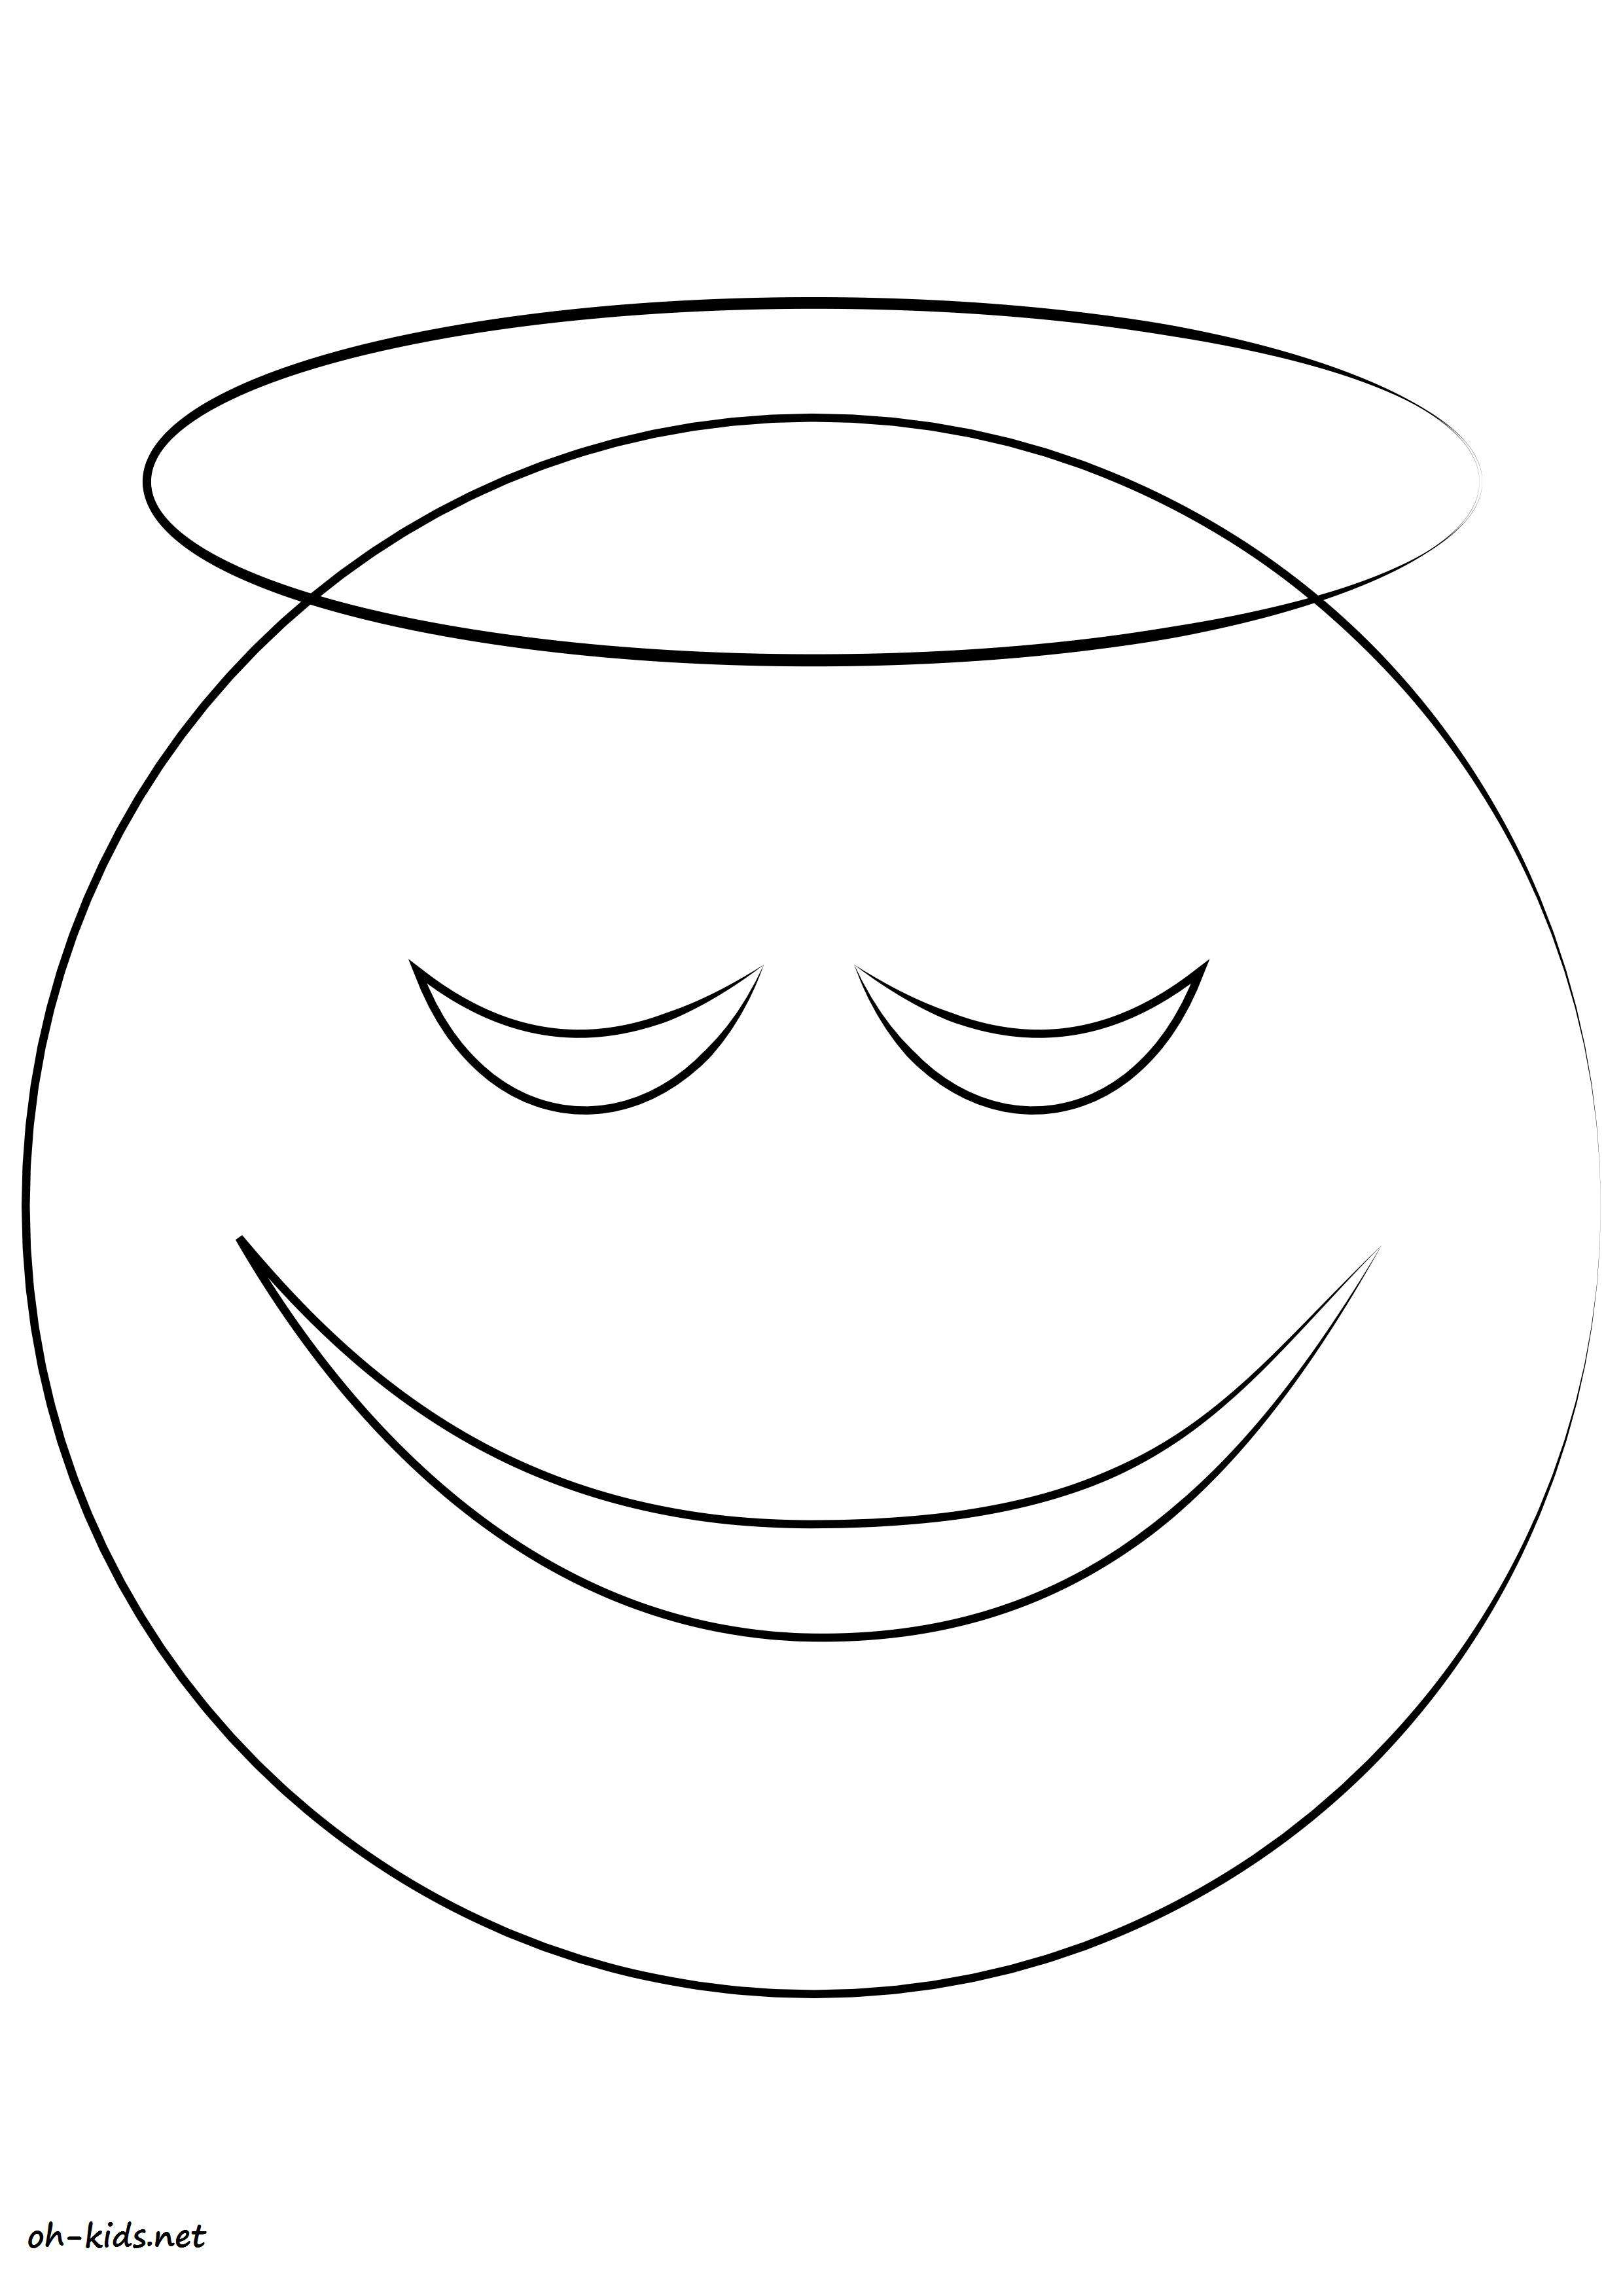 Dessin 756 coloriage smiley imprimer oh - Coloriage de smiley ...